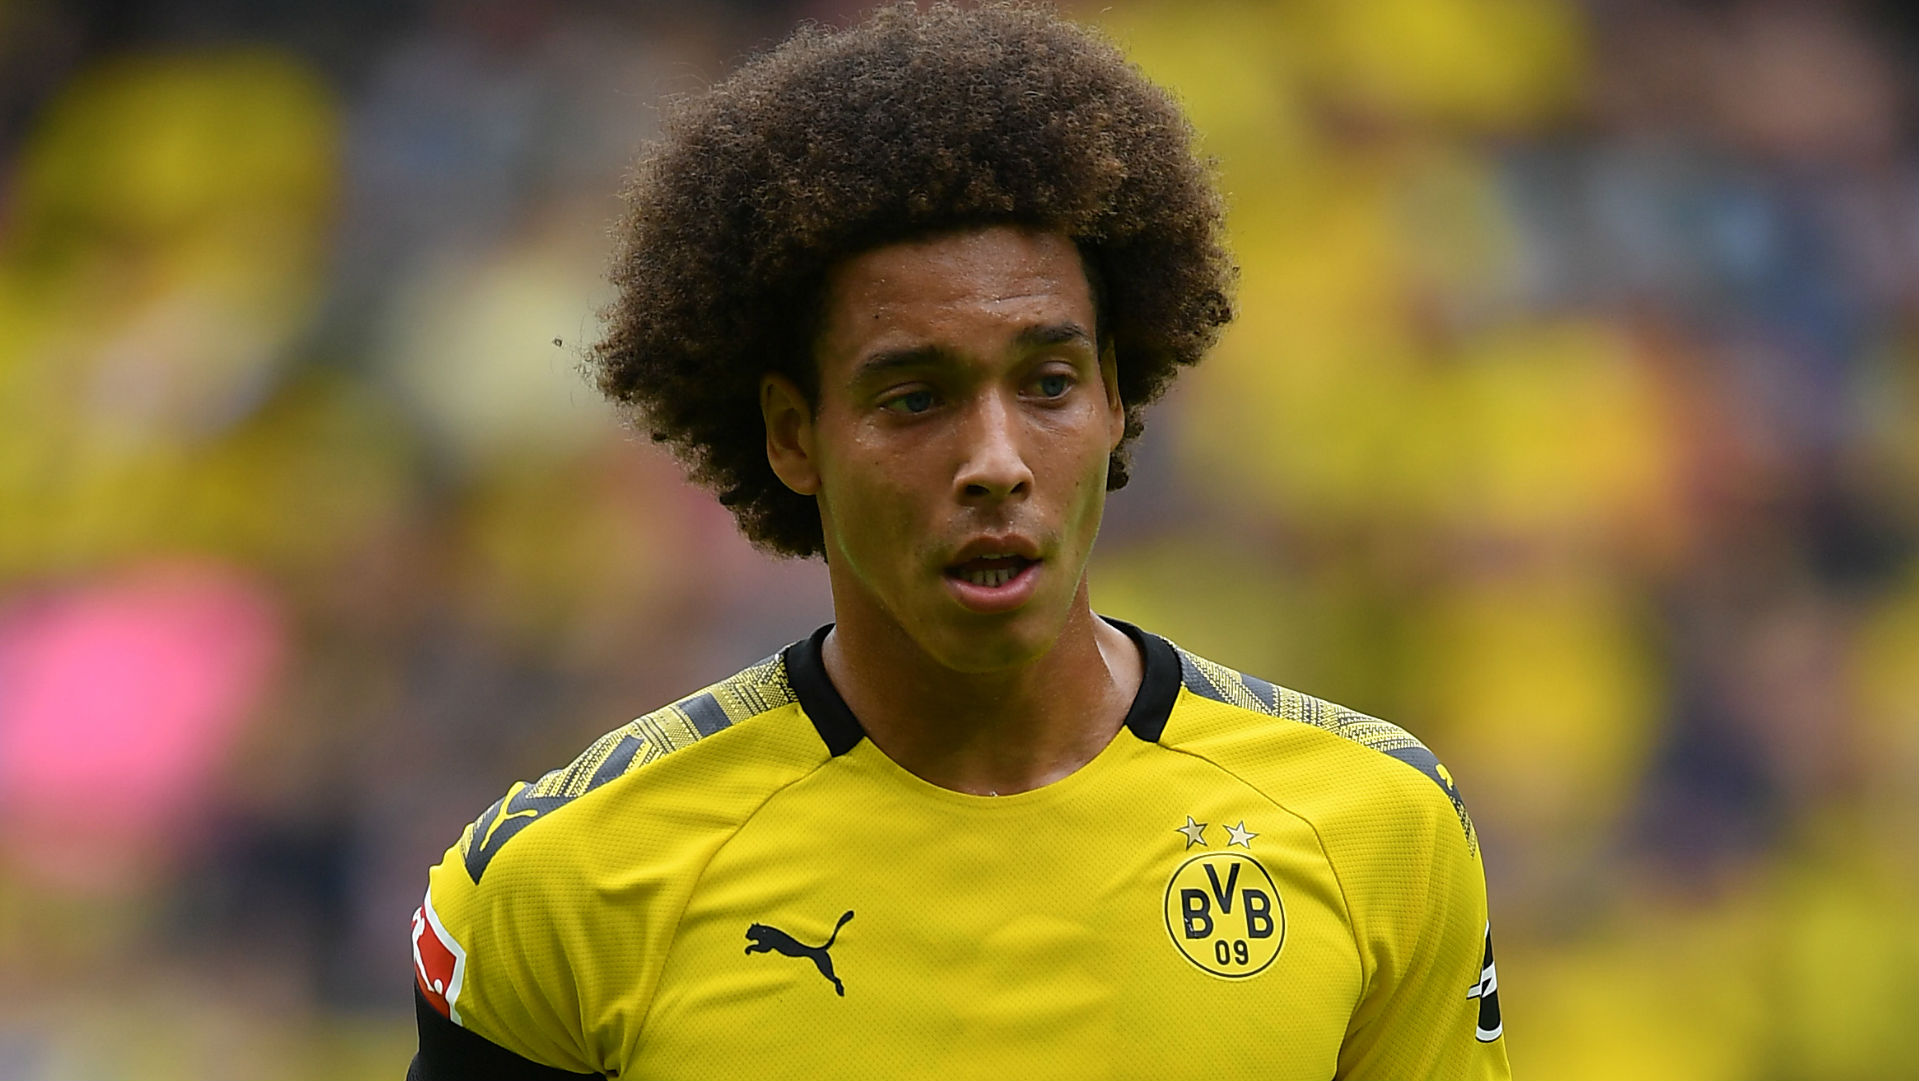 Borussia Dortmund confirm indefinite Witsel injury to spark fears of Belgian midfielder missing Euro 2020